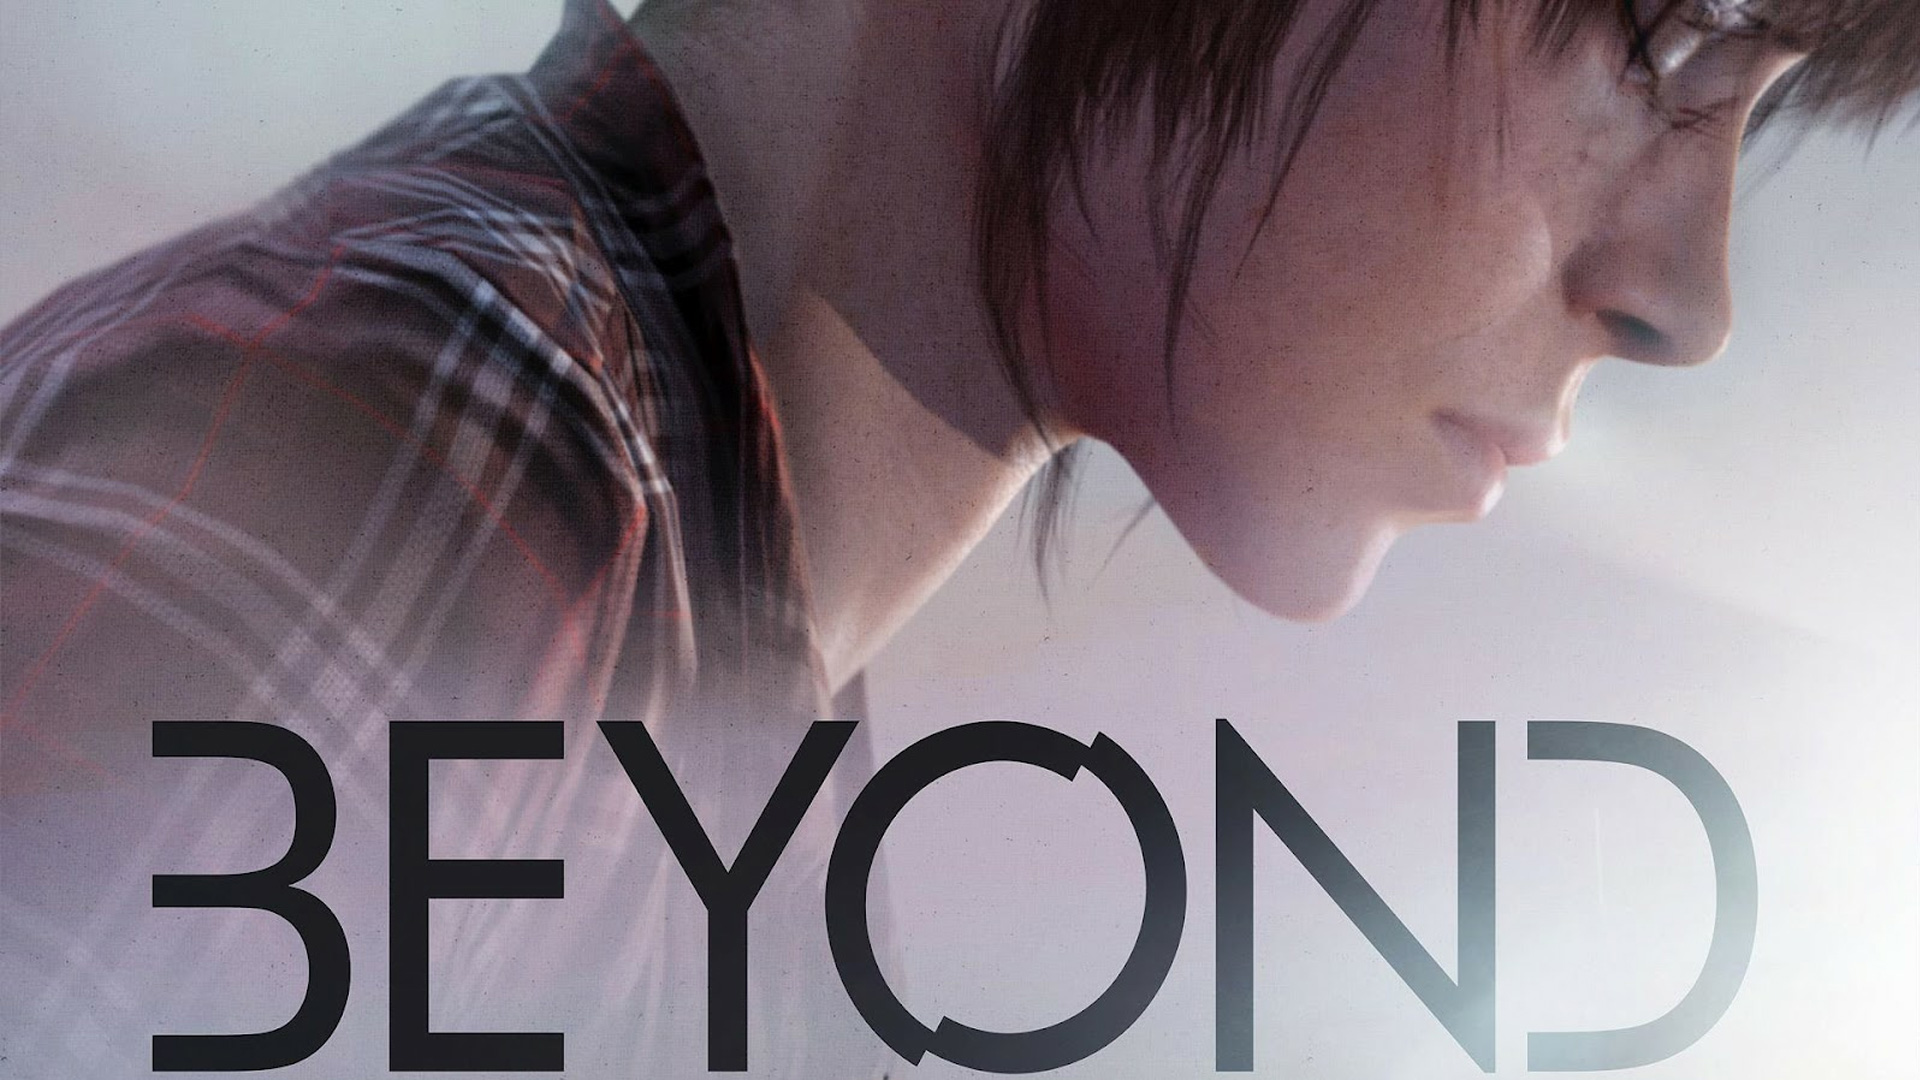 Beyond: Two Souls features the most realistic Ellen Page experience available on modern consoles, at least until PageQuest: The Halifax Hunt.